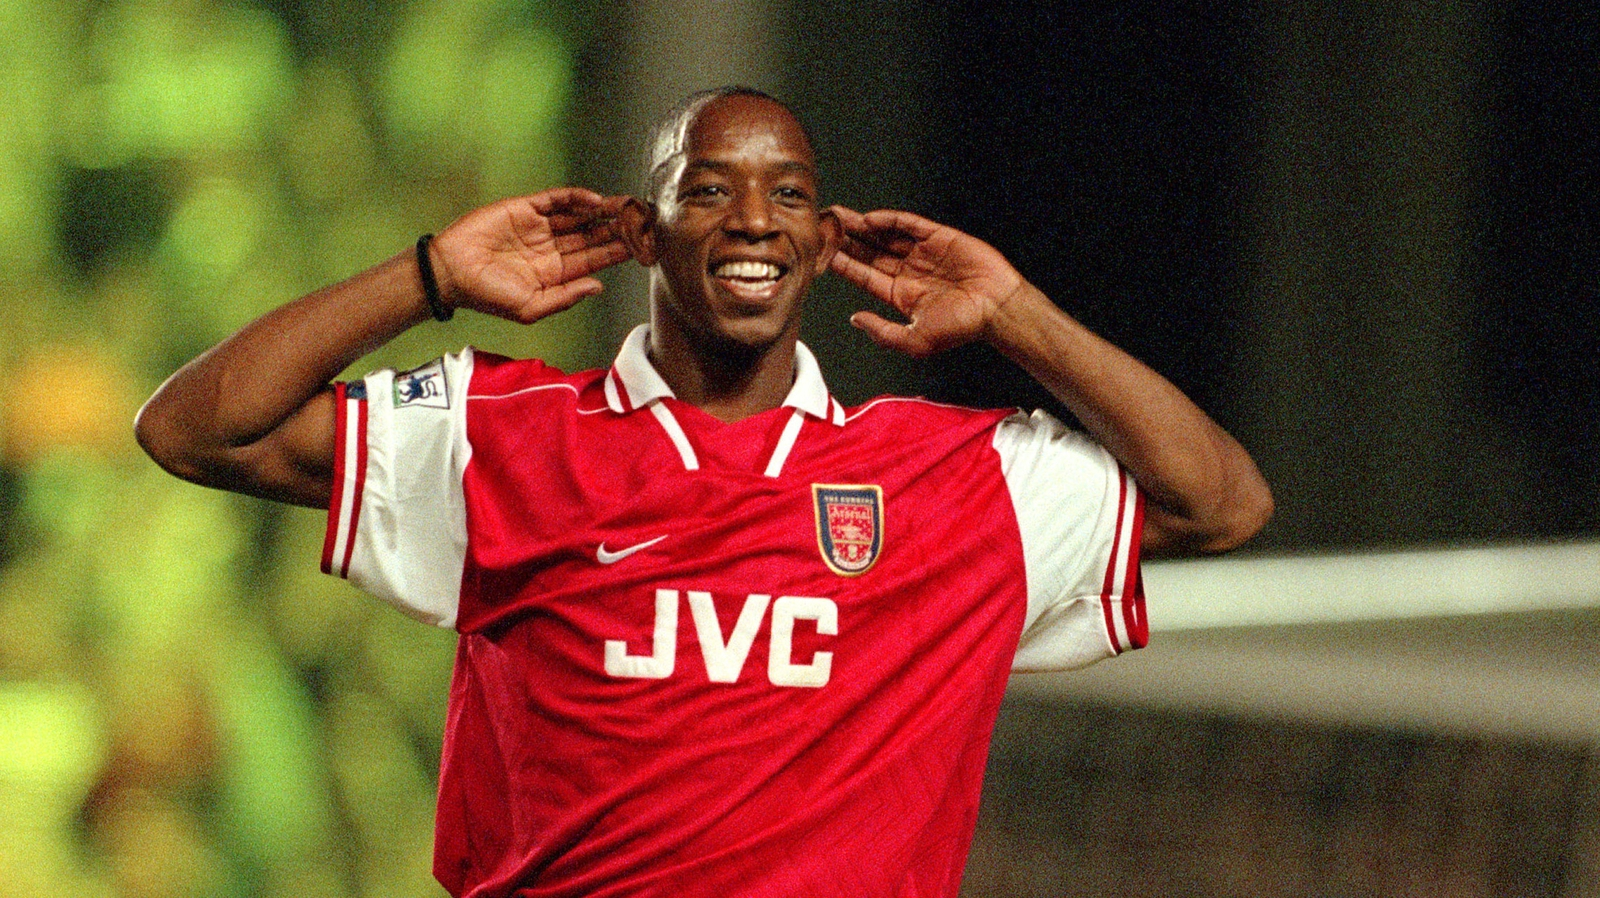 Remember who you are' - Ian Wright hits out at Arsenal